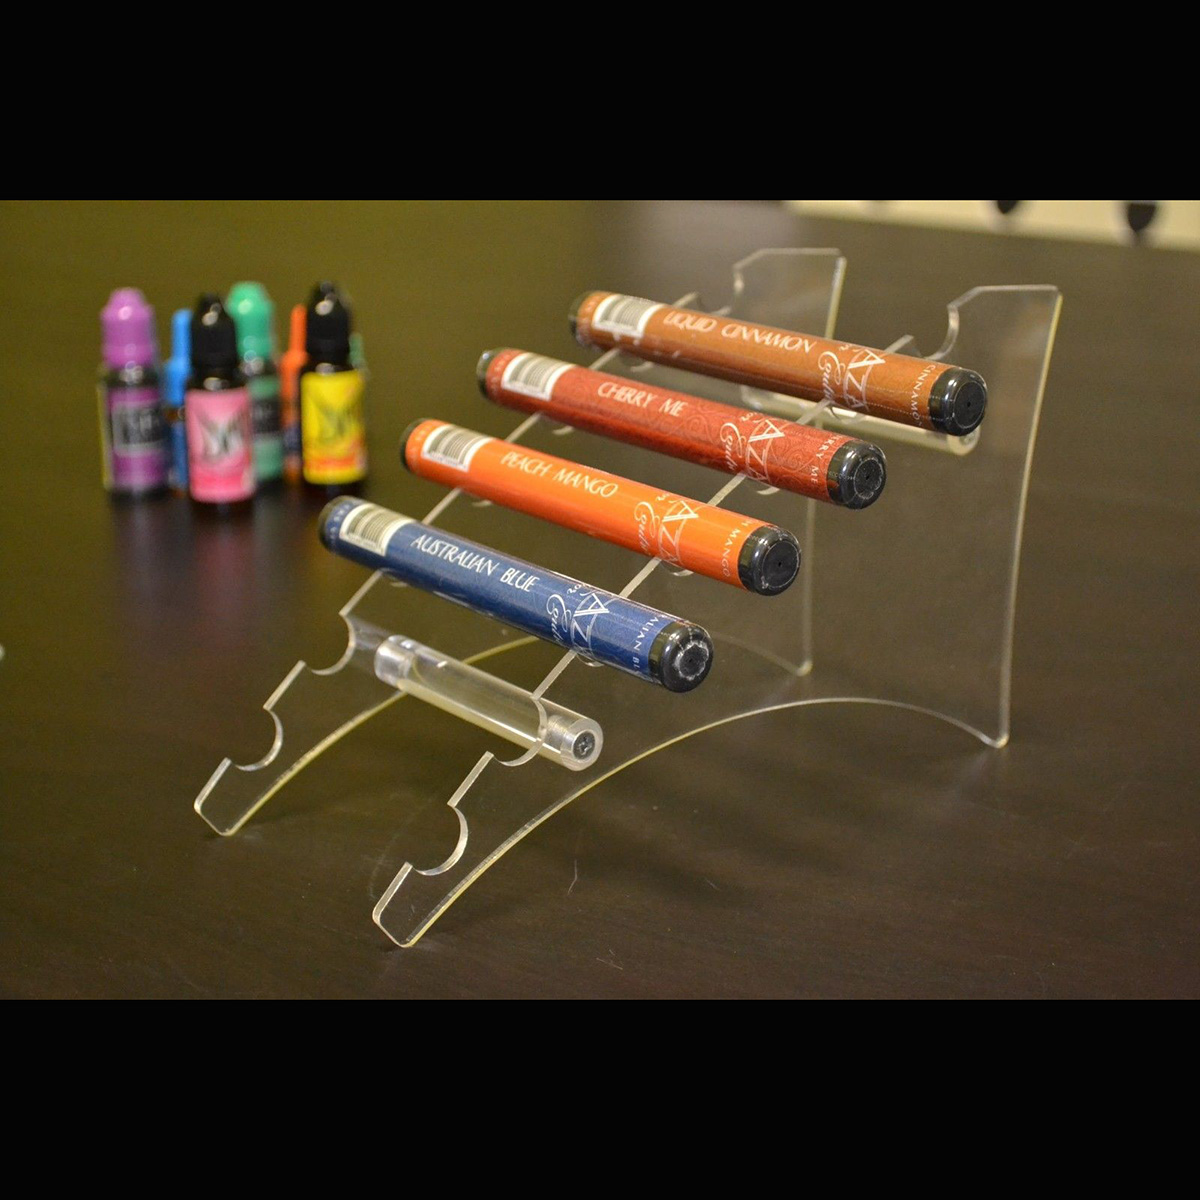 K010 Acrylic Vape Kit Display Easels 7pcs E-cig Stand